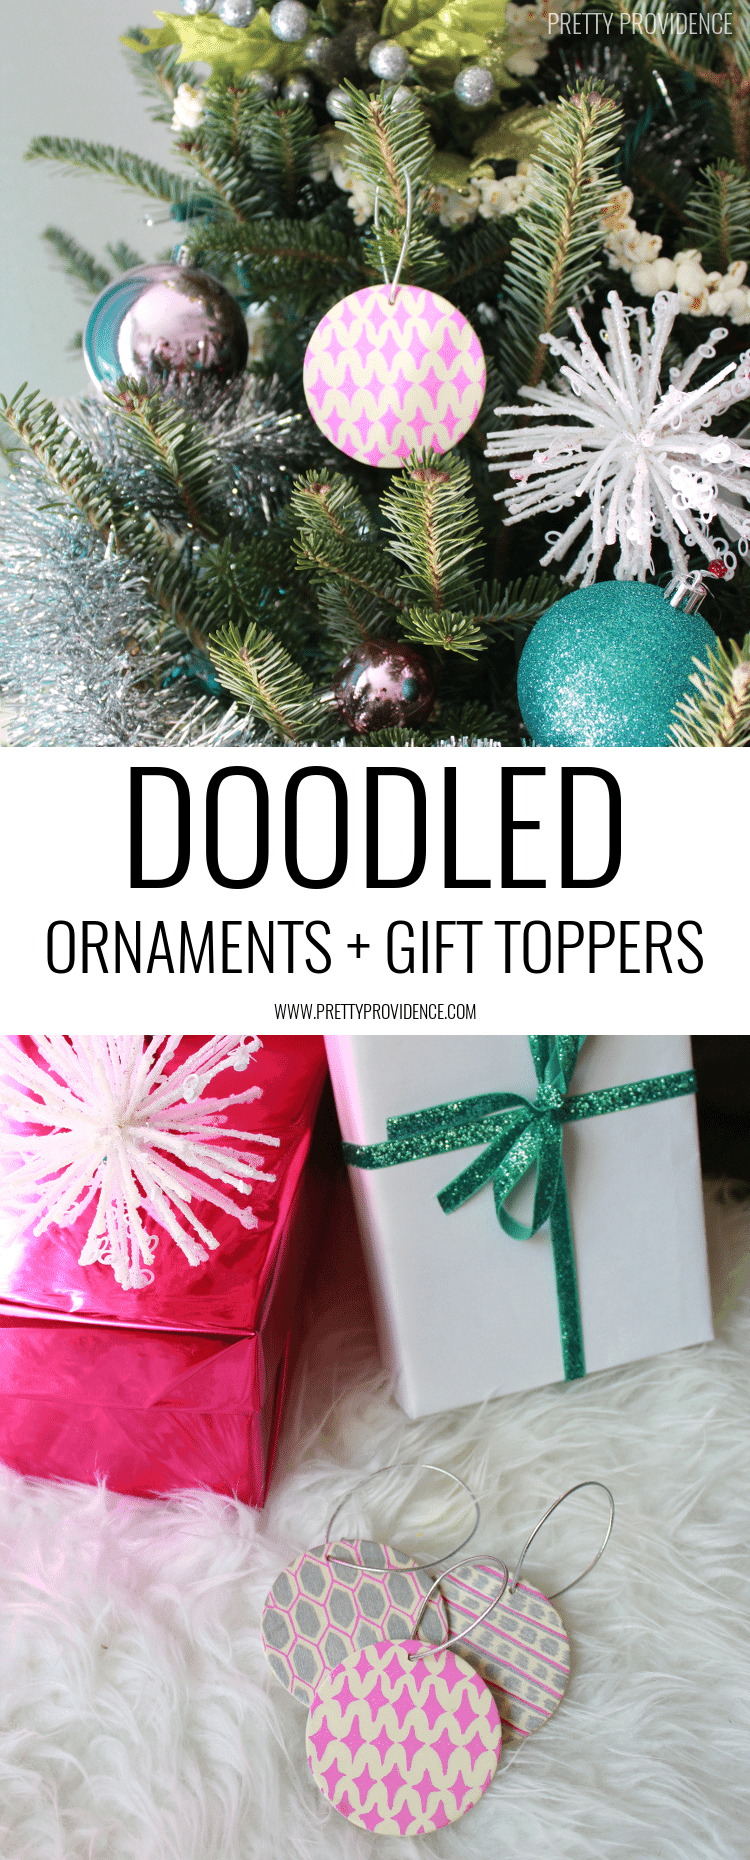 doodled-ornaments-gift-toppers-pin